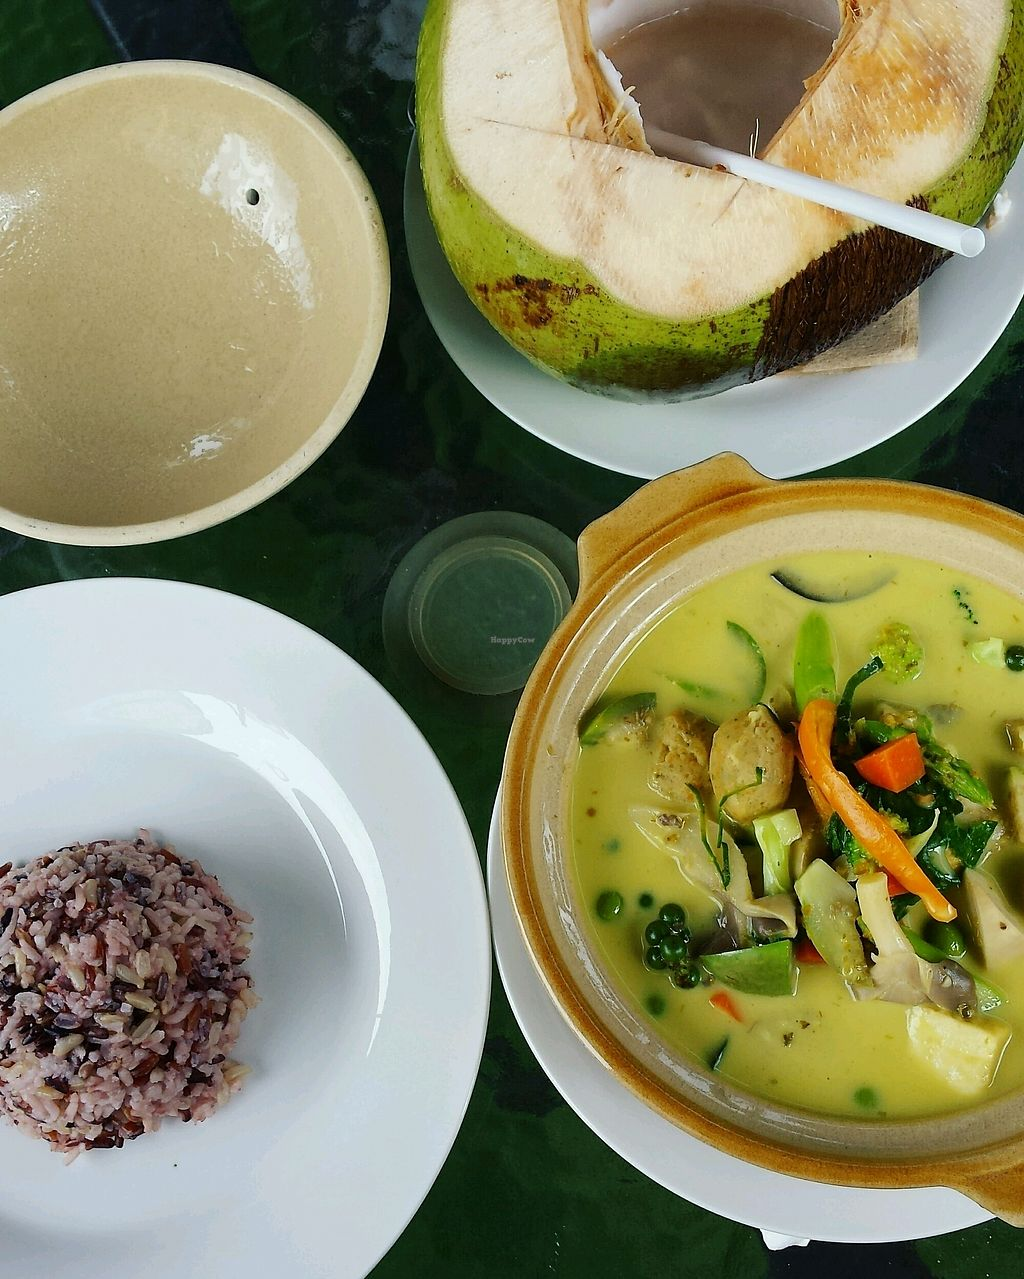 "Photo of House of Joy  by <a href=""/members/profile/renataw"">renataw</a> <br/>Thai green curry and fresh coconut ? <br/> October 12, 2017  - <a href='/contact/abuse/image/94068/314445'>Report</a>"